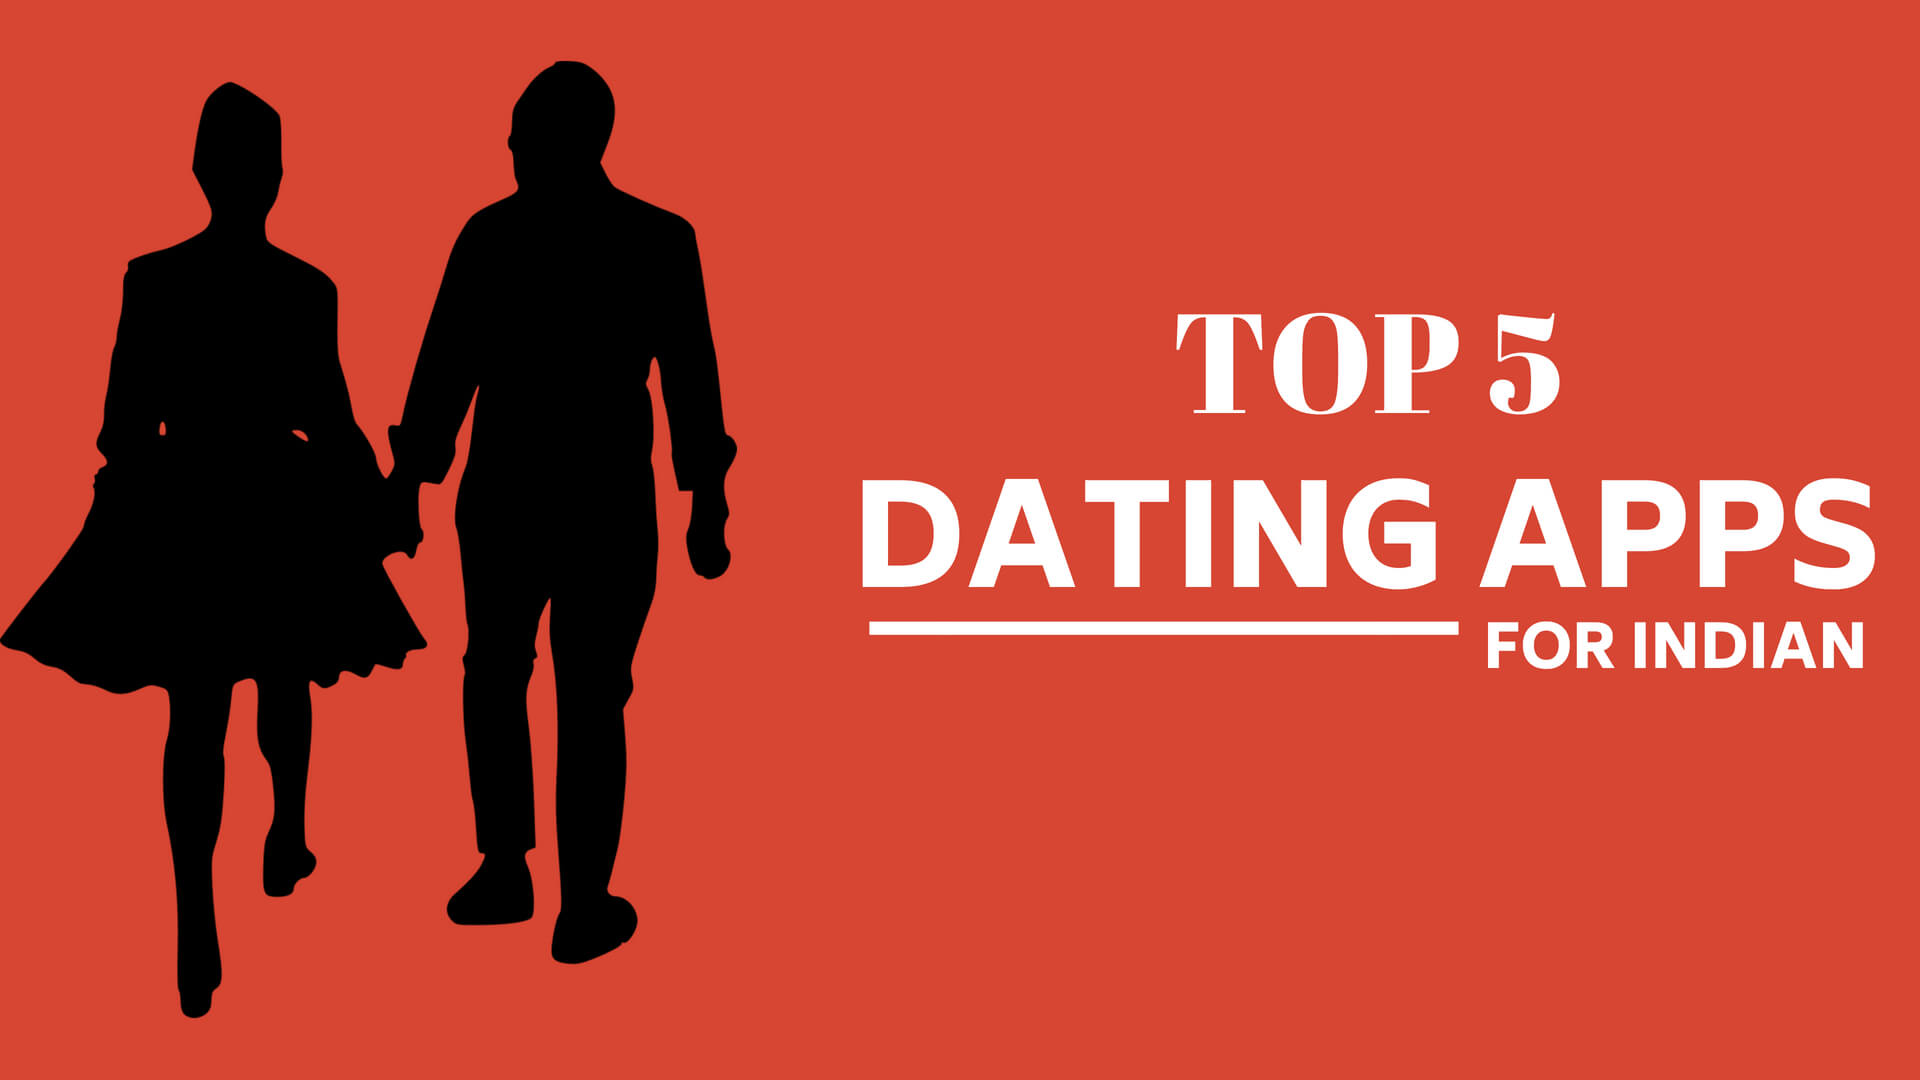 Top 5 dating apps in pakistan